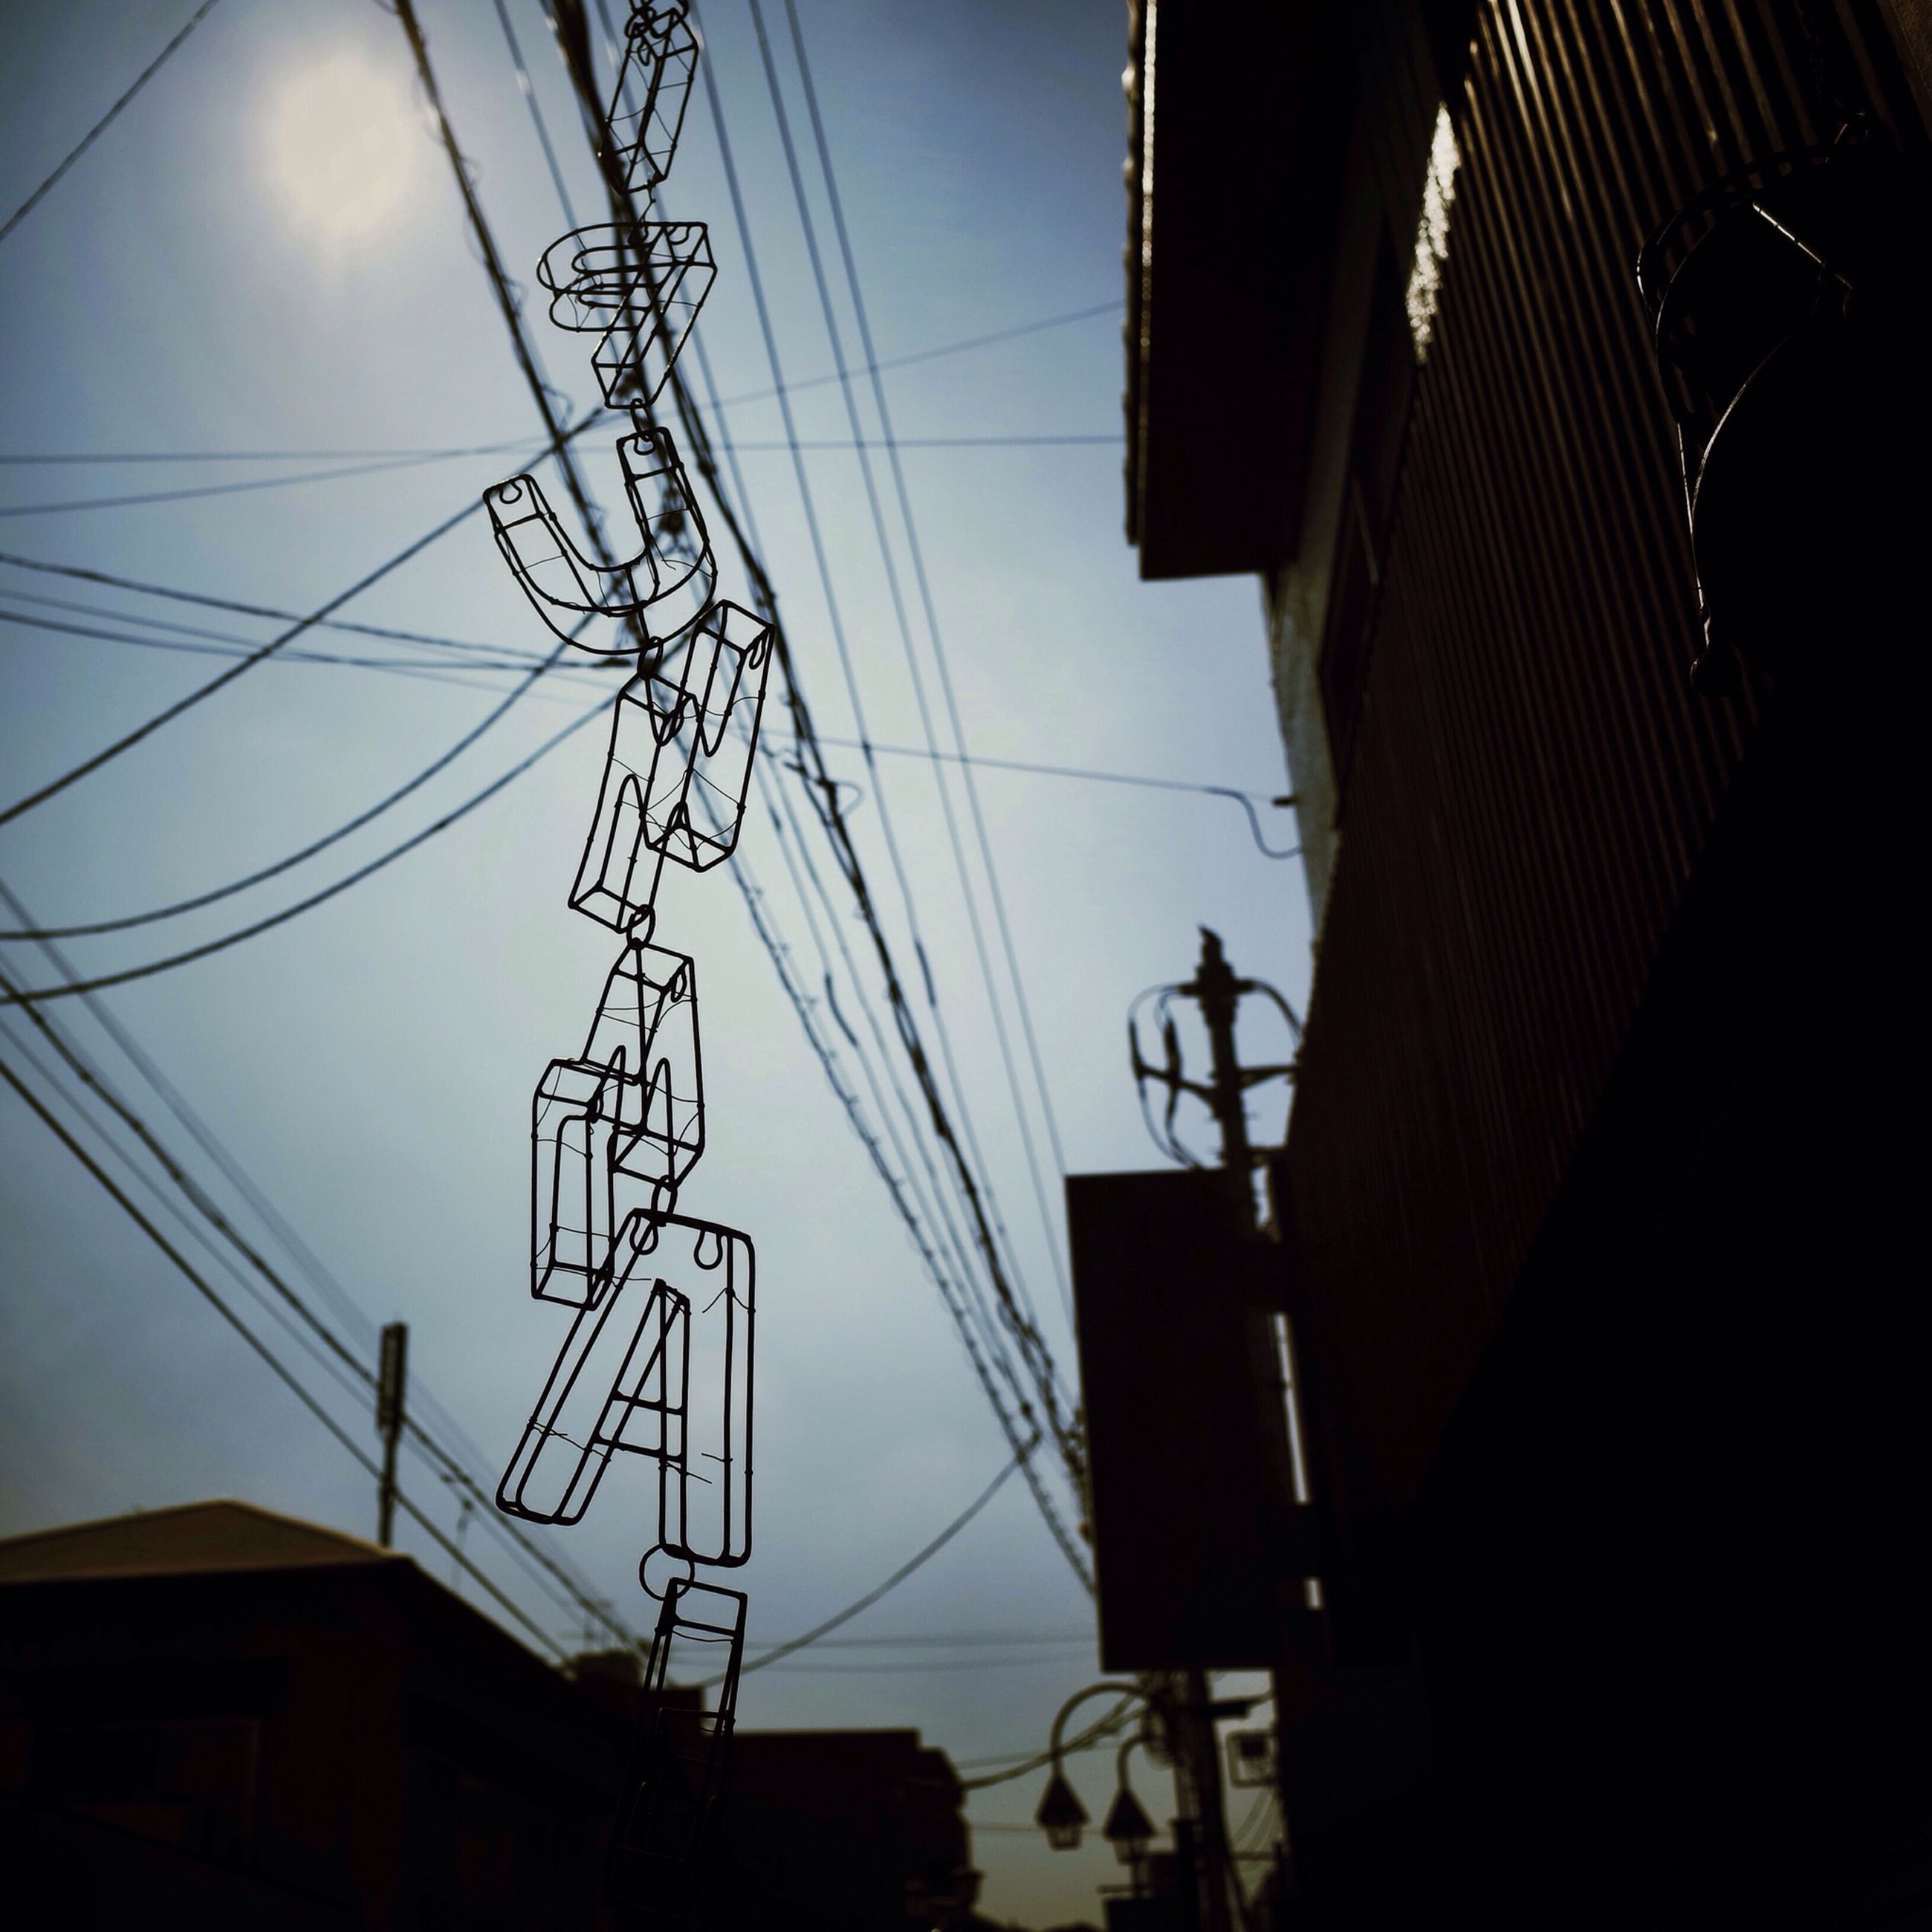 power line, electricity, electricity pylon, low angle view, power supply, cable, built structure, architecture, building exterior, silhouette, connection, fuel and power generation, sky, power cable, technology, house, dusk, no people, outdoors, building